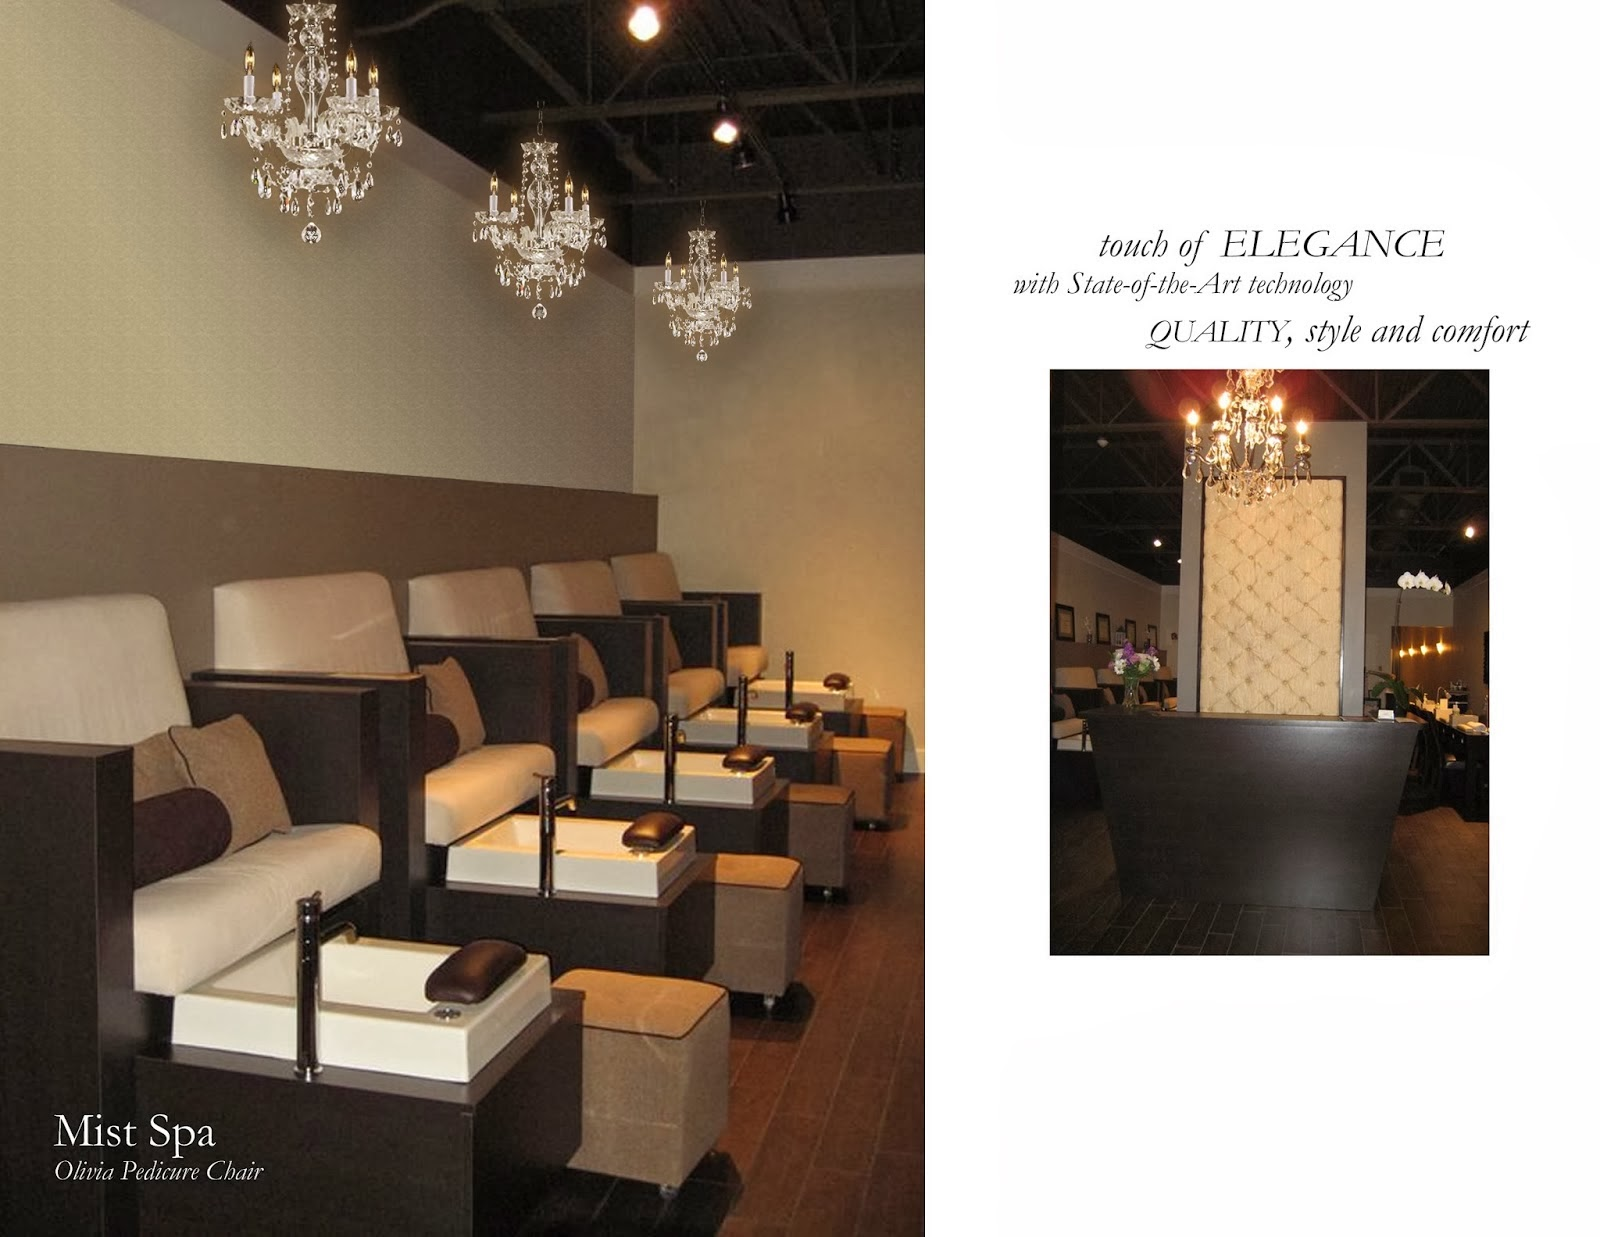 Luxury nail salon interior design - We Have Extensive Experience In The Design And Development Of Nail Spa And Salon Interiors